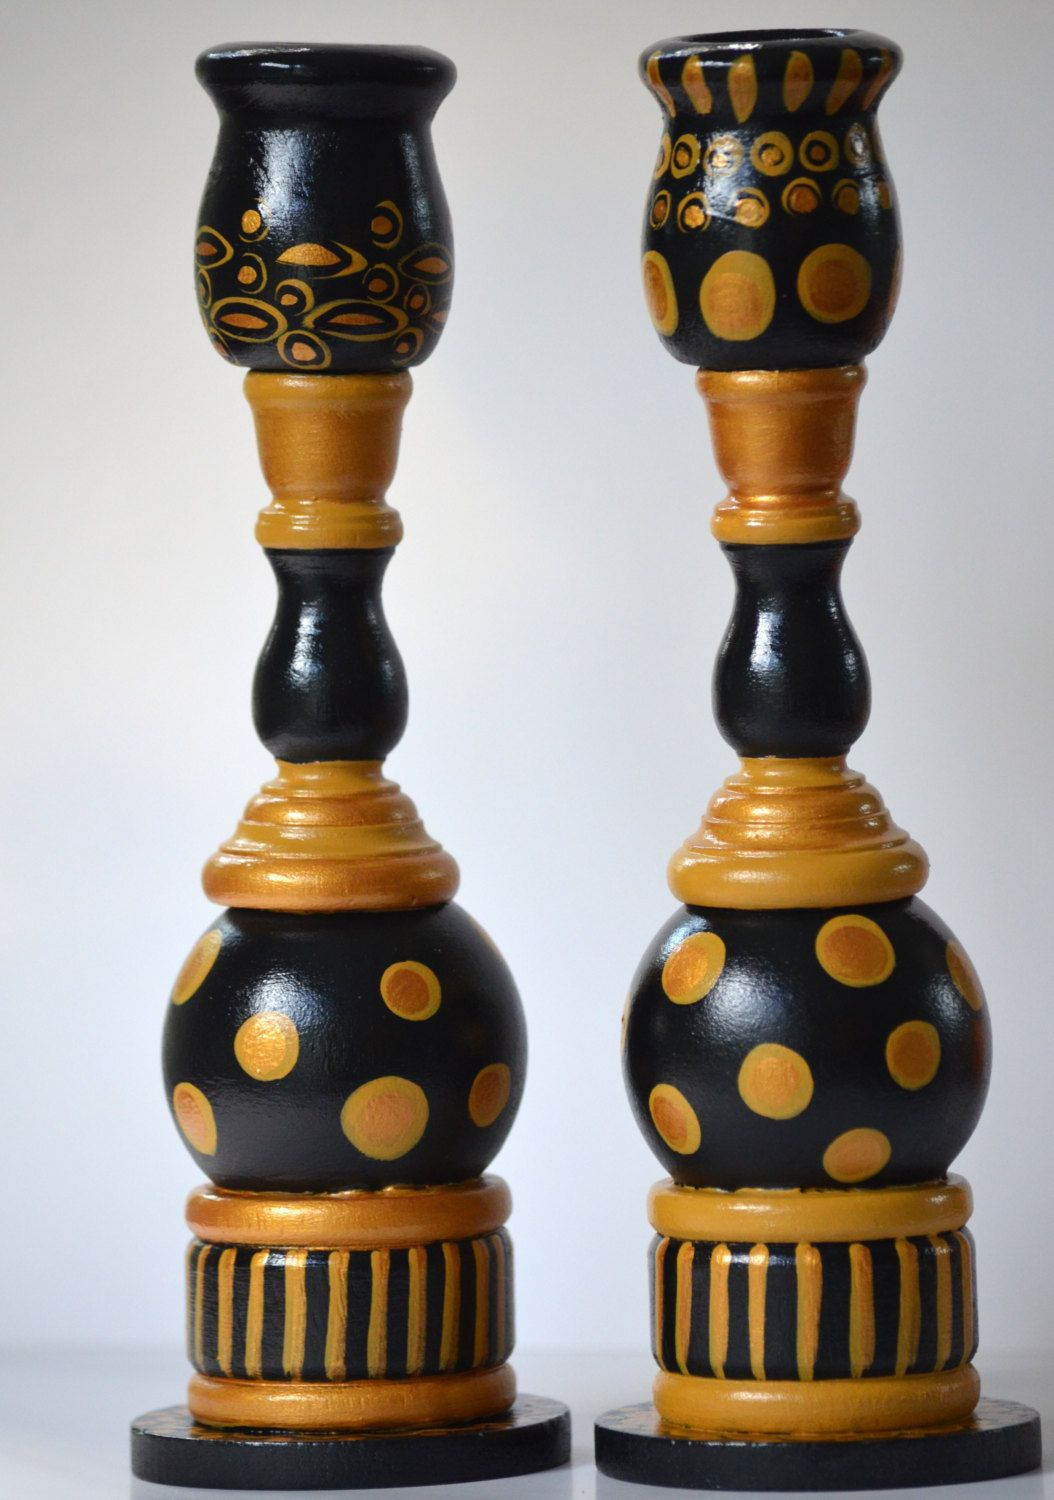 Set of two handpainted black and gold art deco candlestick holders